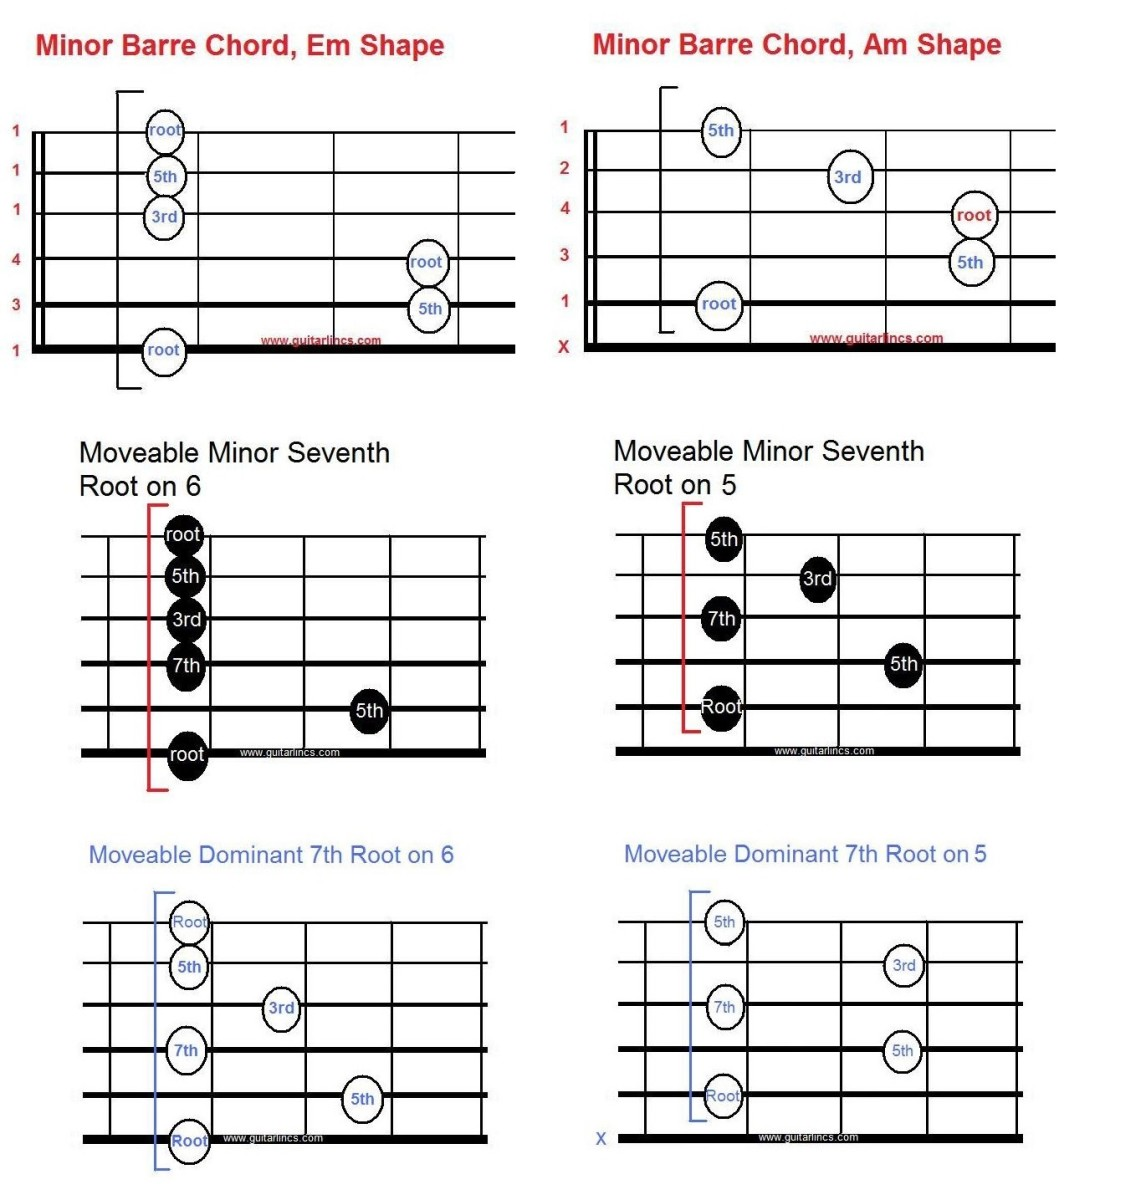 Moveable minor shapes can also be built from power chords. The minor seventh (m7) is lush sounding and the dominant seventh (7) is bluesy.